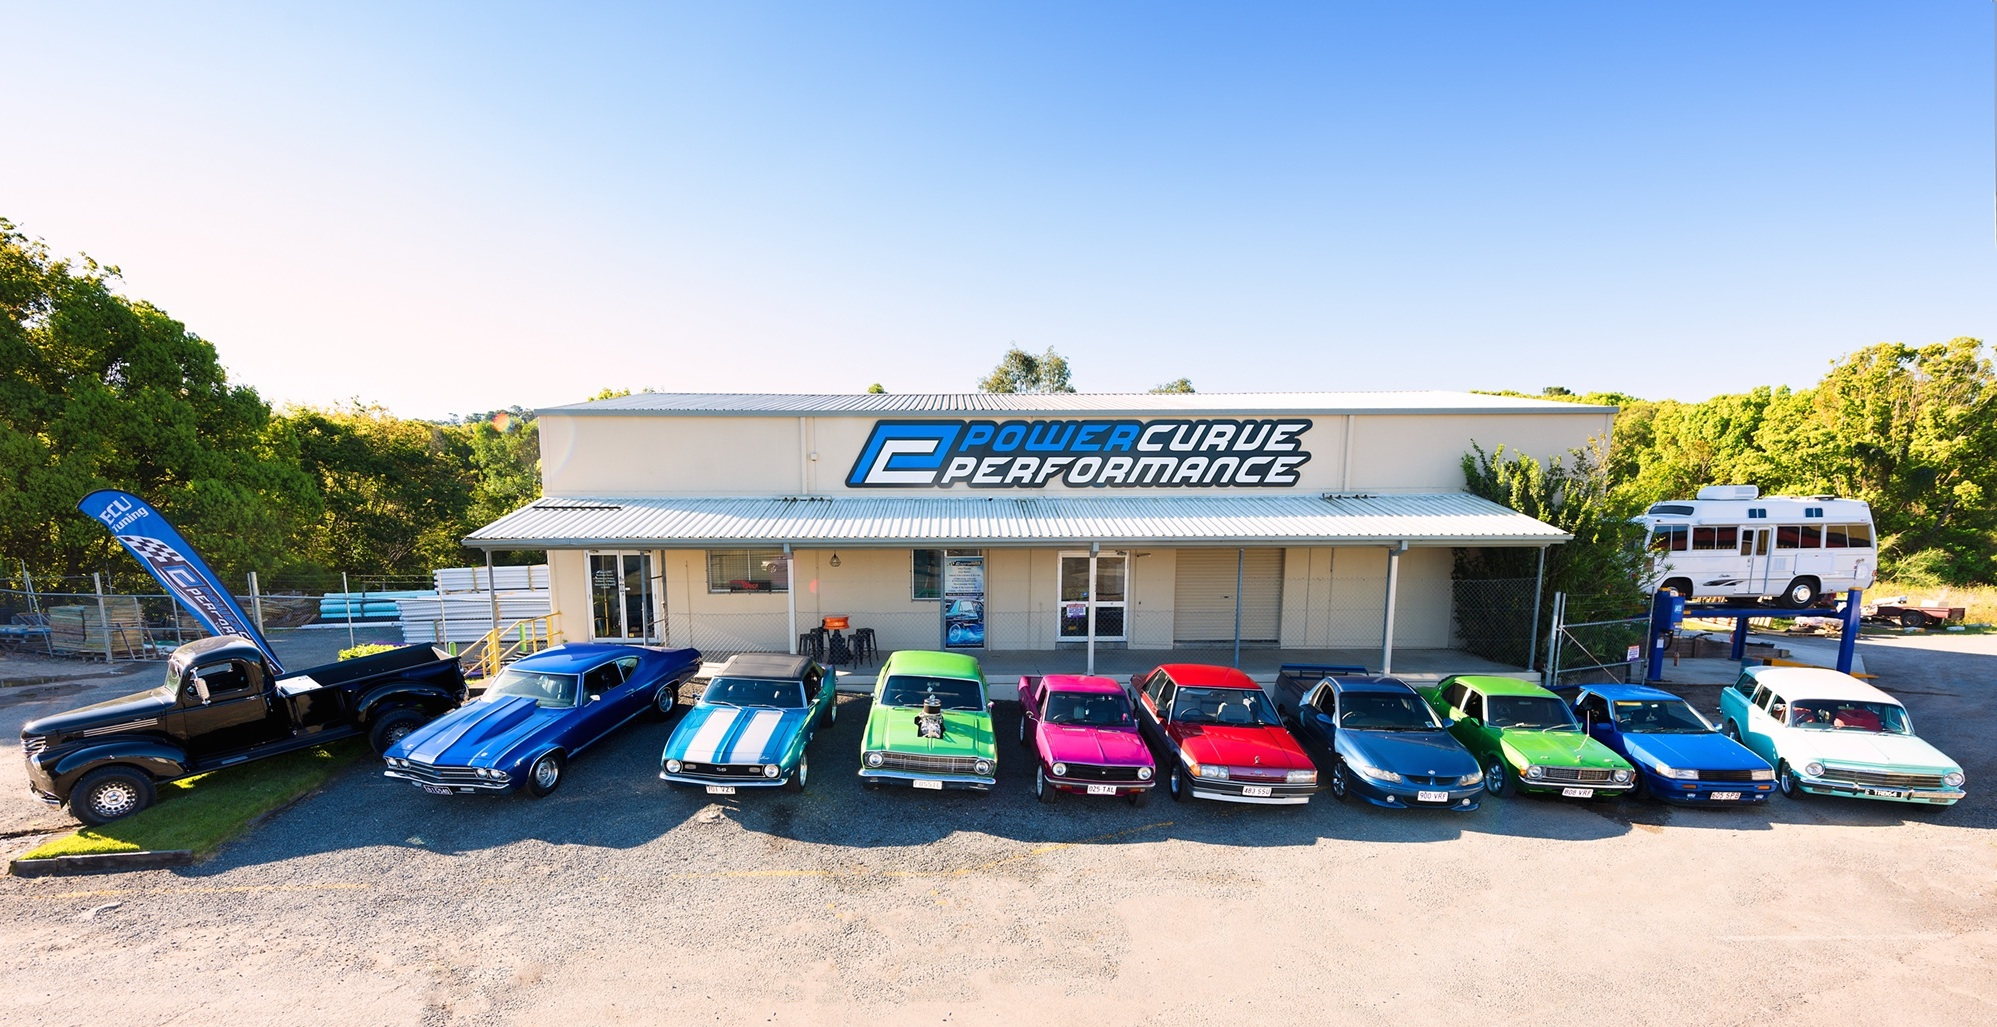 power curve performance sunshine coast nambour burnside dyno tune sunshine coast dyno tuning power curve performance Nambour mechanical 4wd upgrades modification turbo upgrades injector upgrades duramax conversions nissan tune ECU Tune Diesel Tune